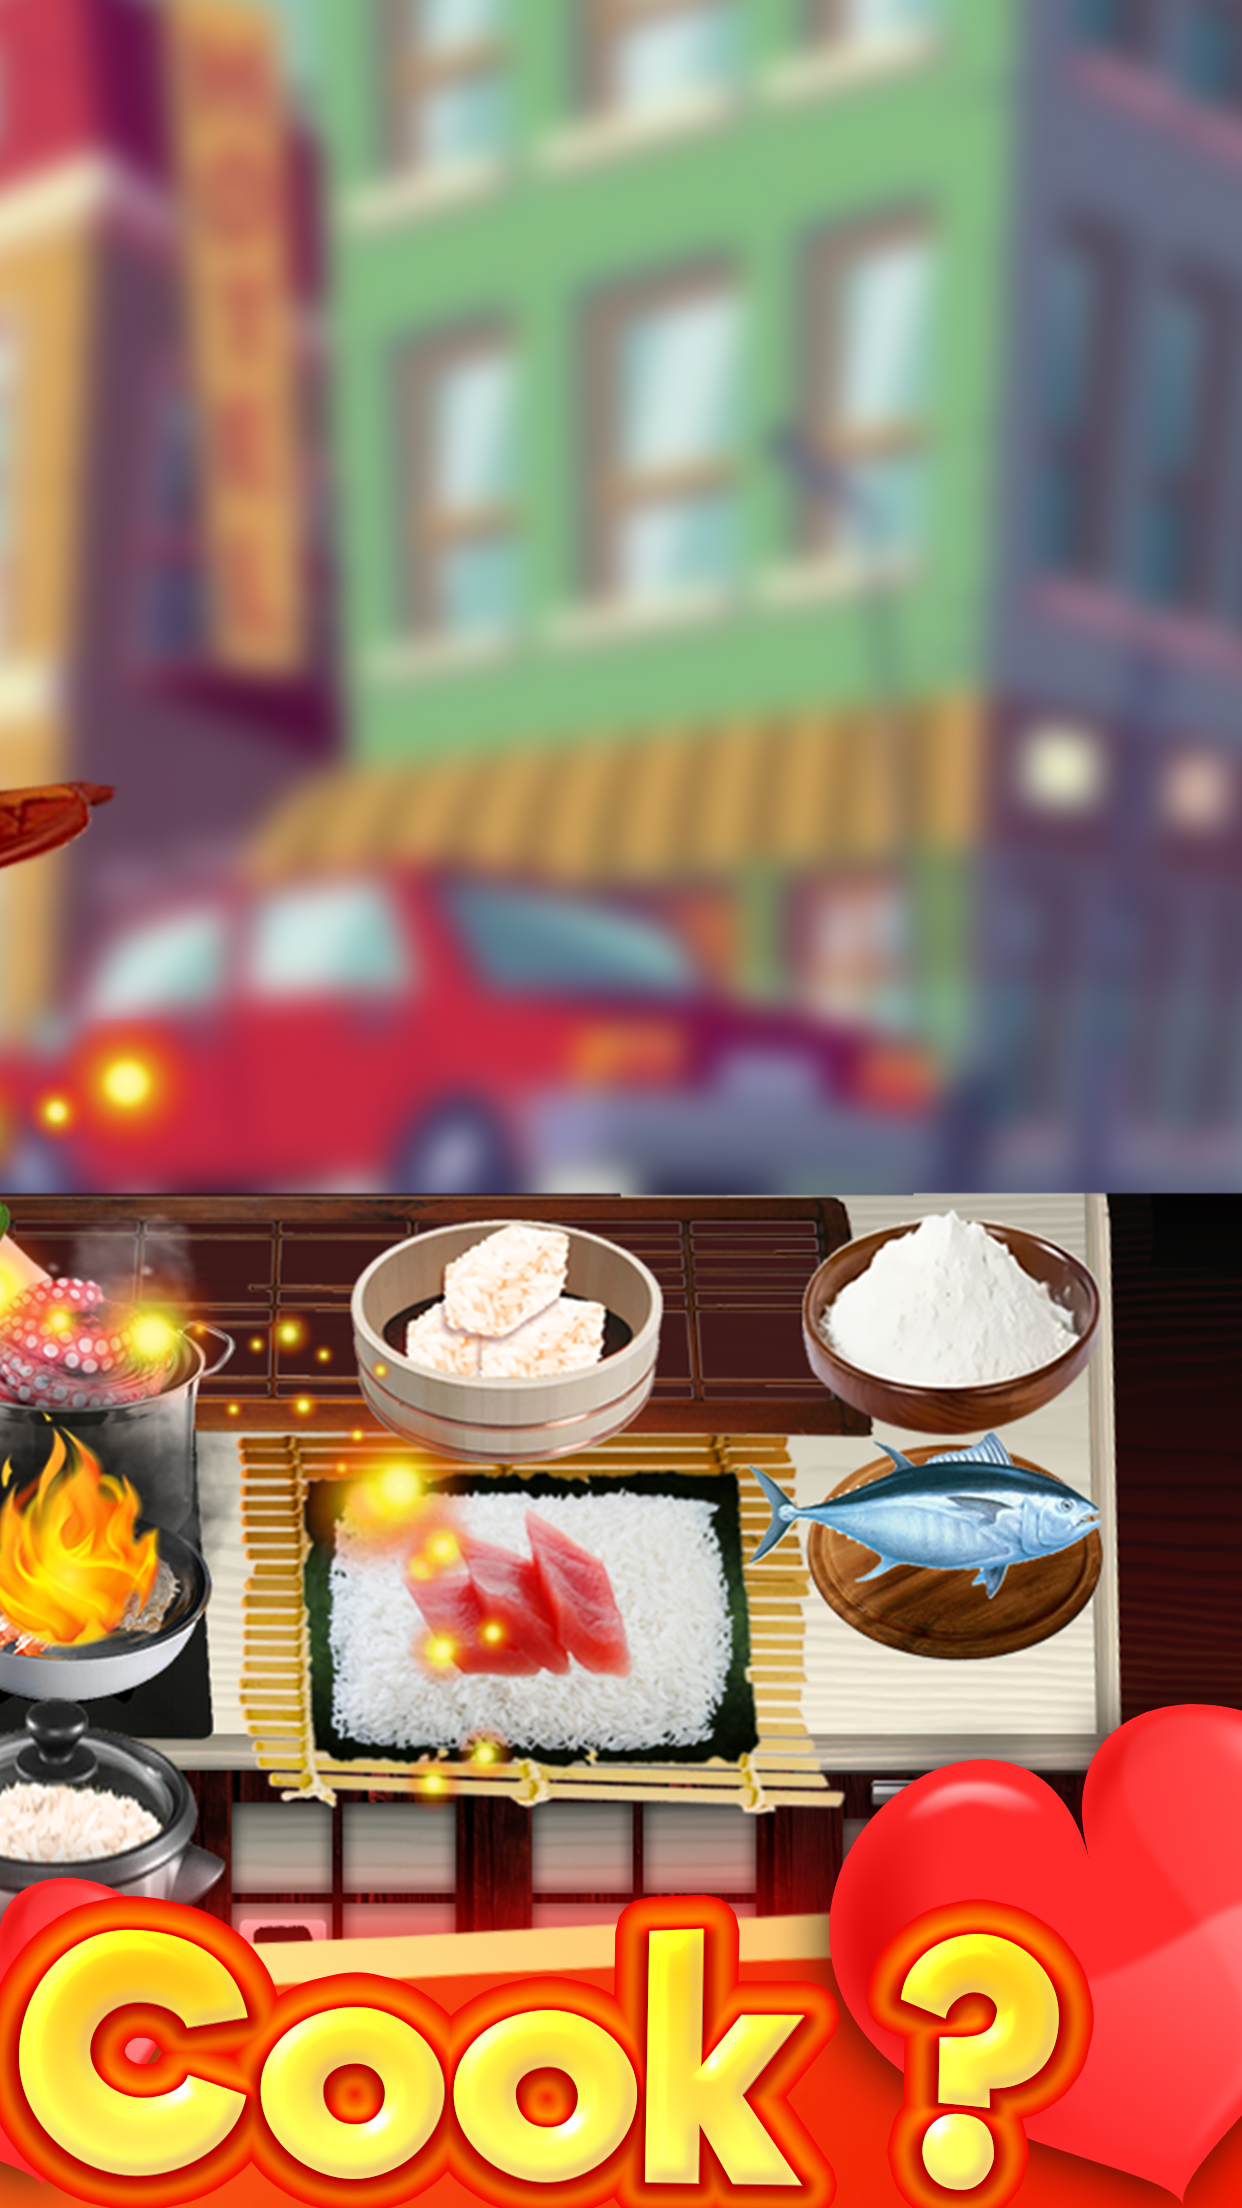 The Cooking Game- Mama Kitchen Screenshot